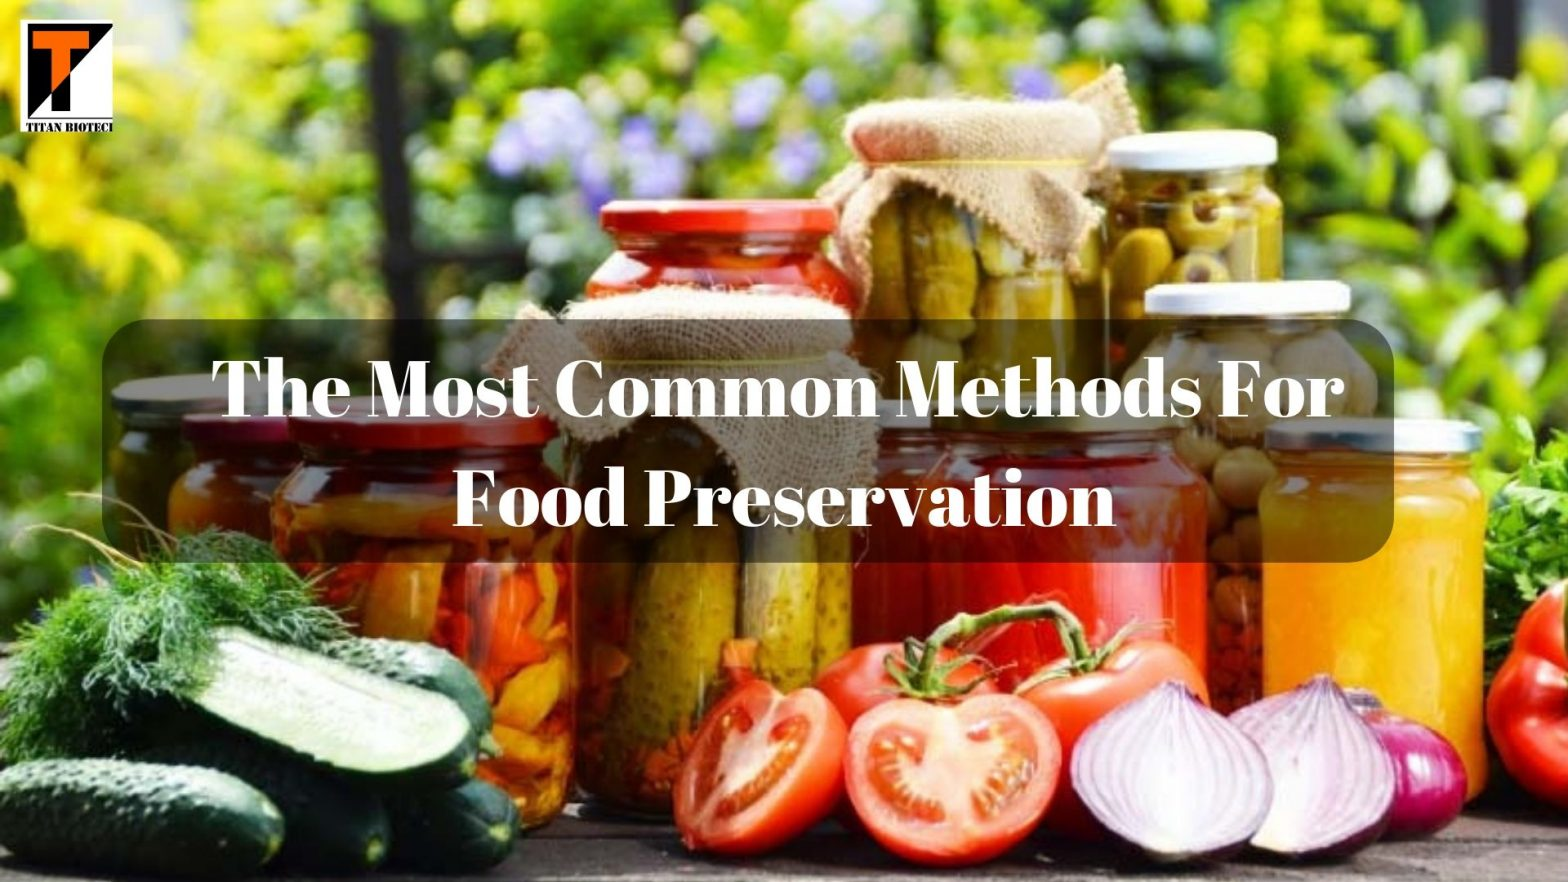 The Most Common Methods for Food Preservatives